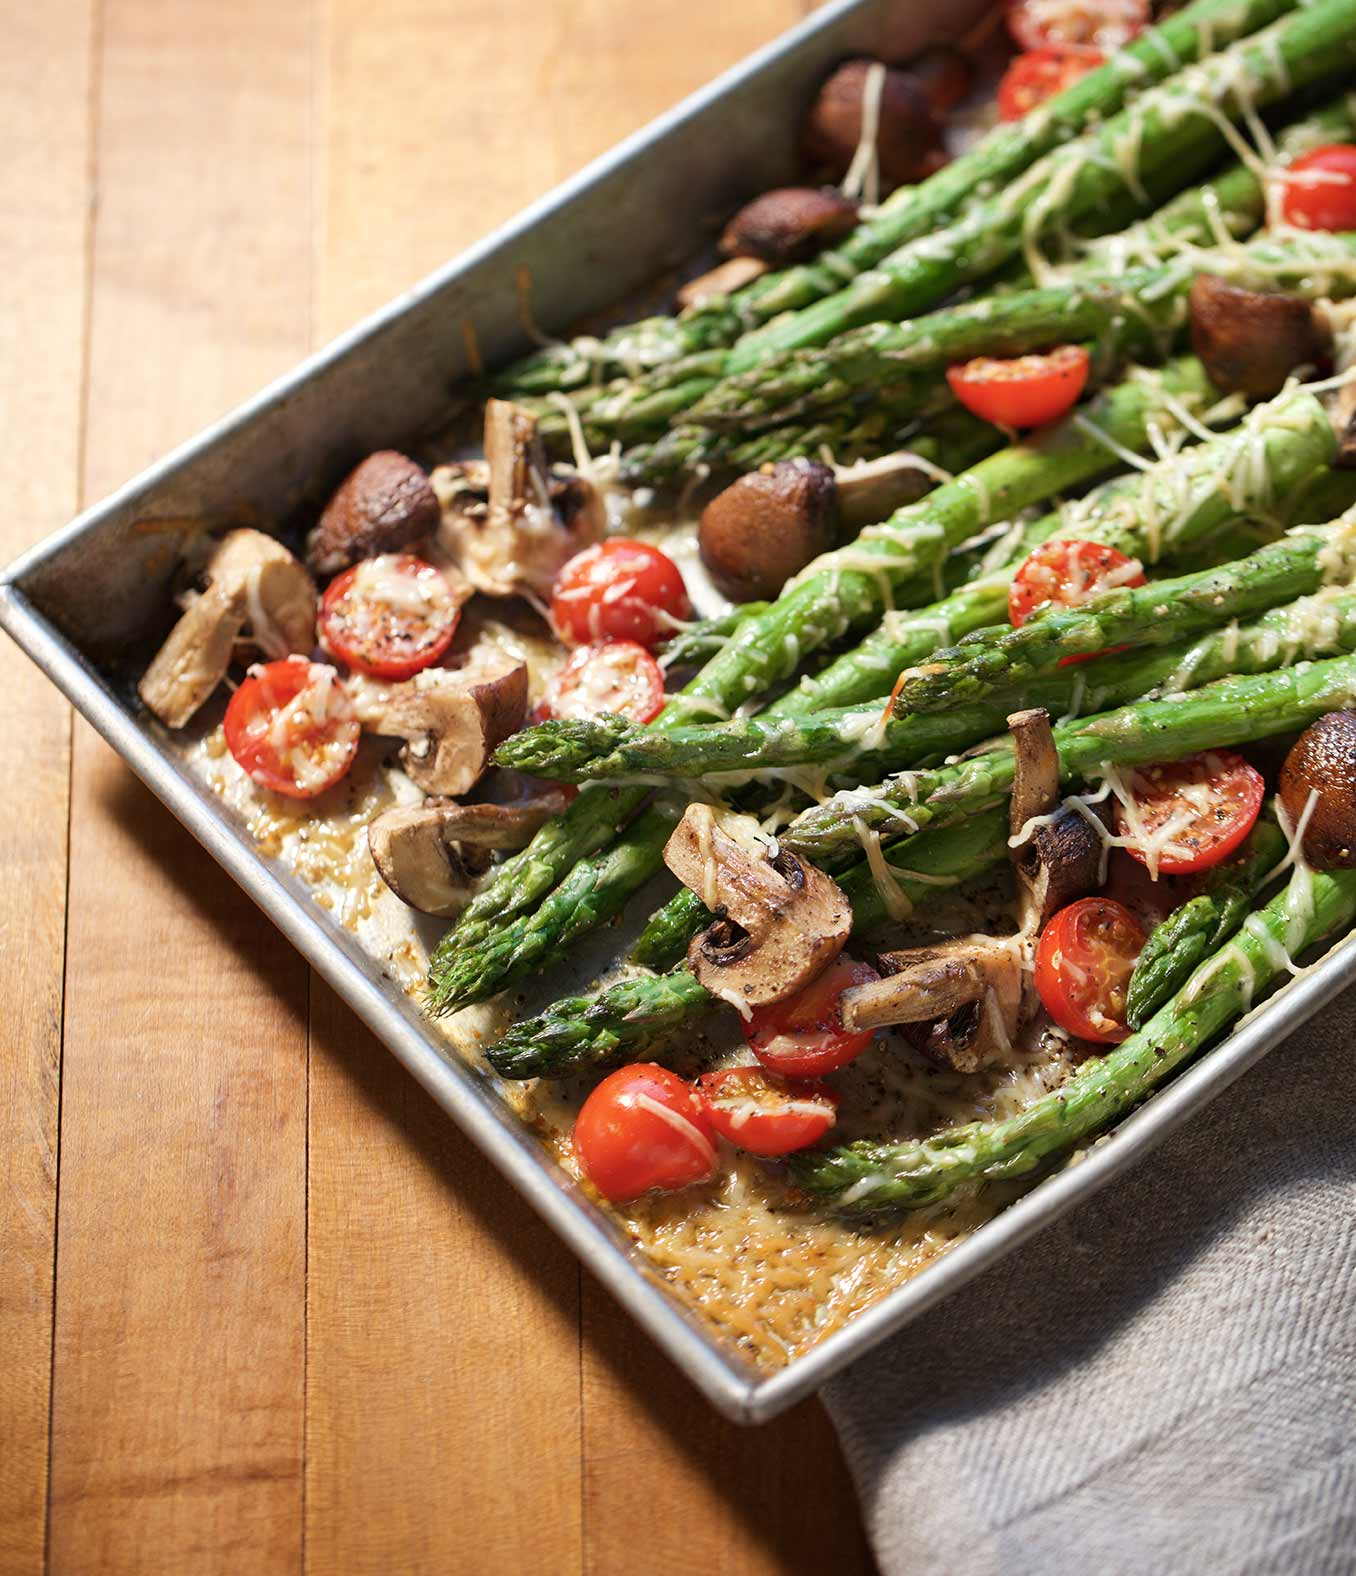 Butter-Roasted Asparagus With Organic Valley